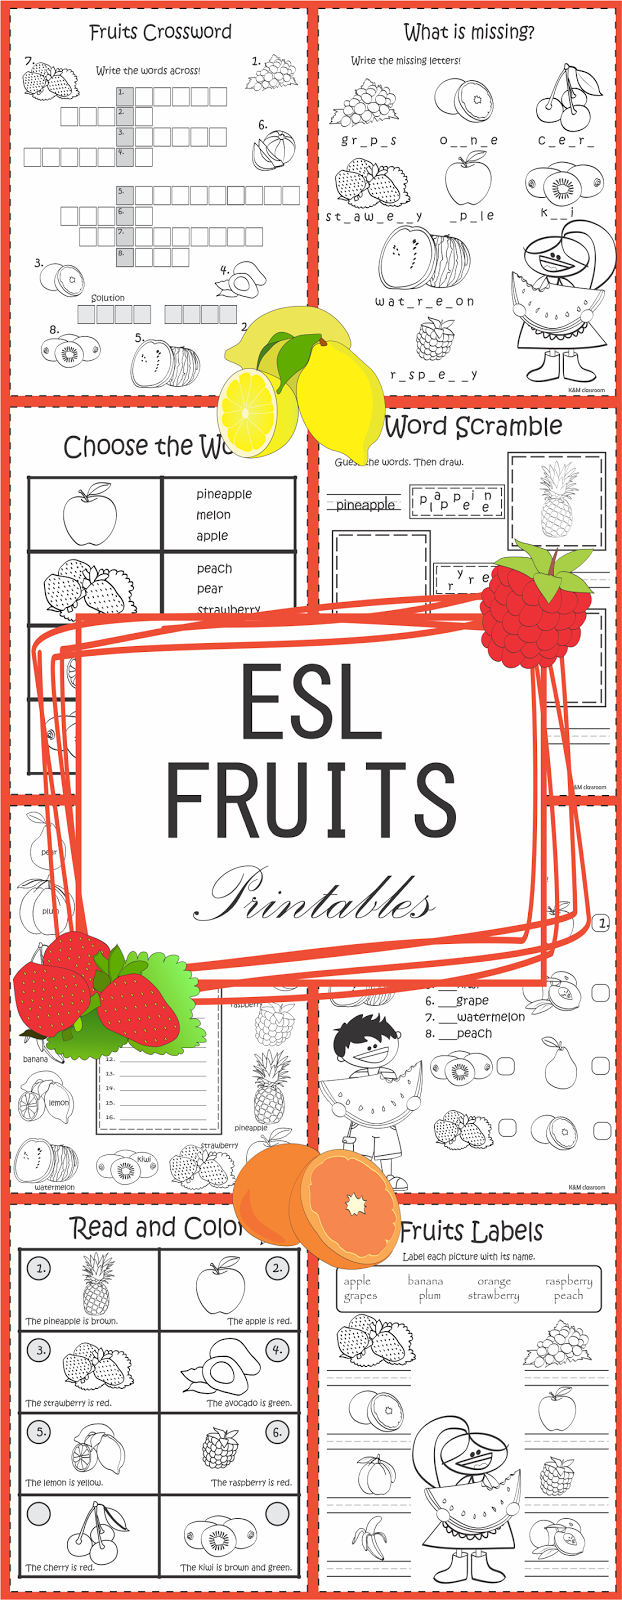 ESL Fruits Vocabulary Worksheets Printables